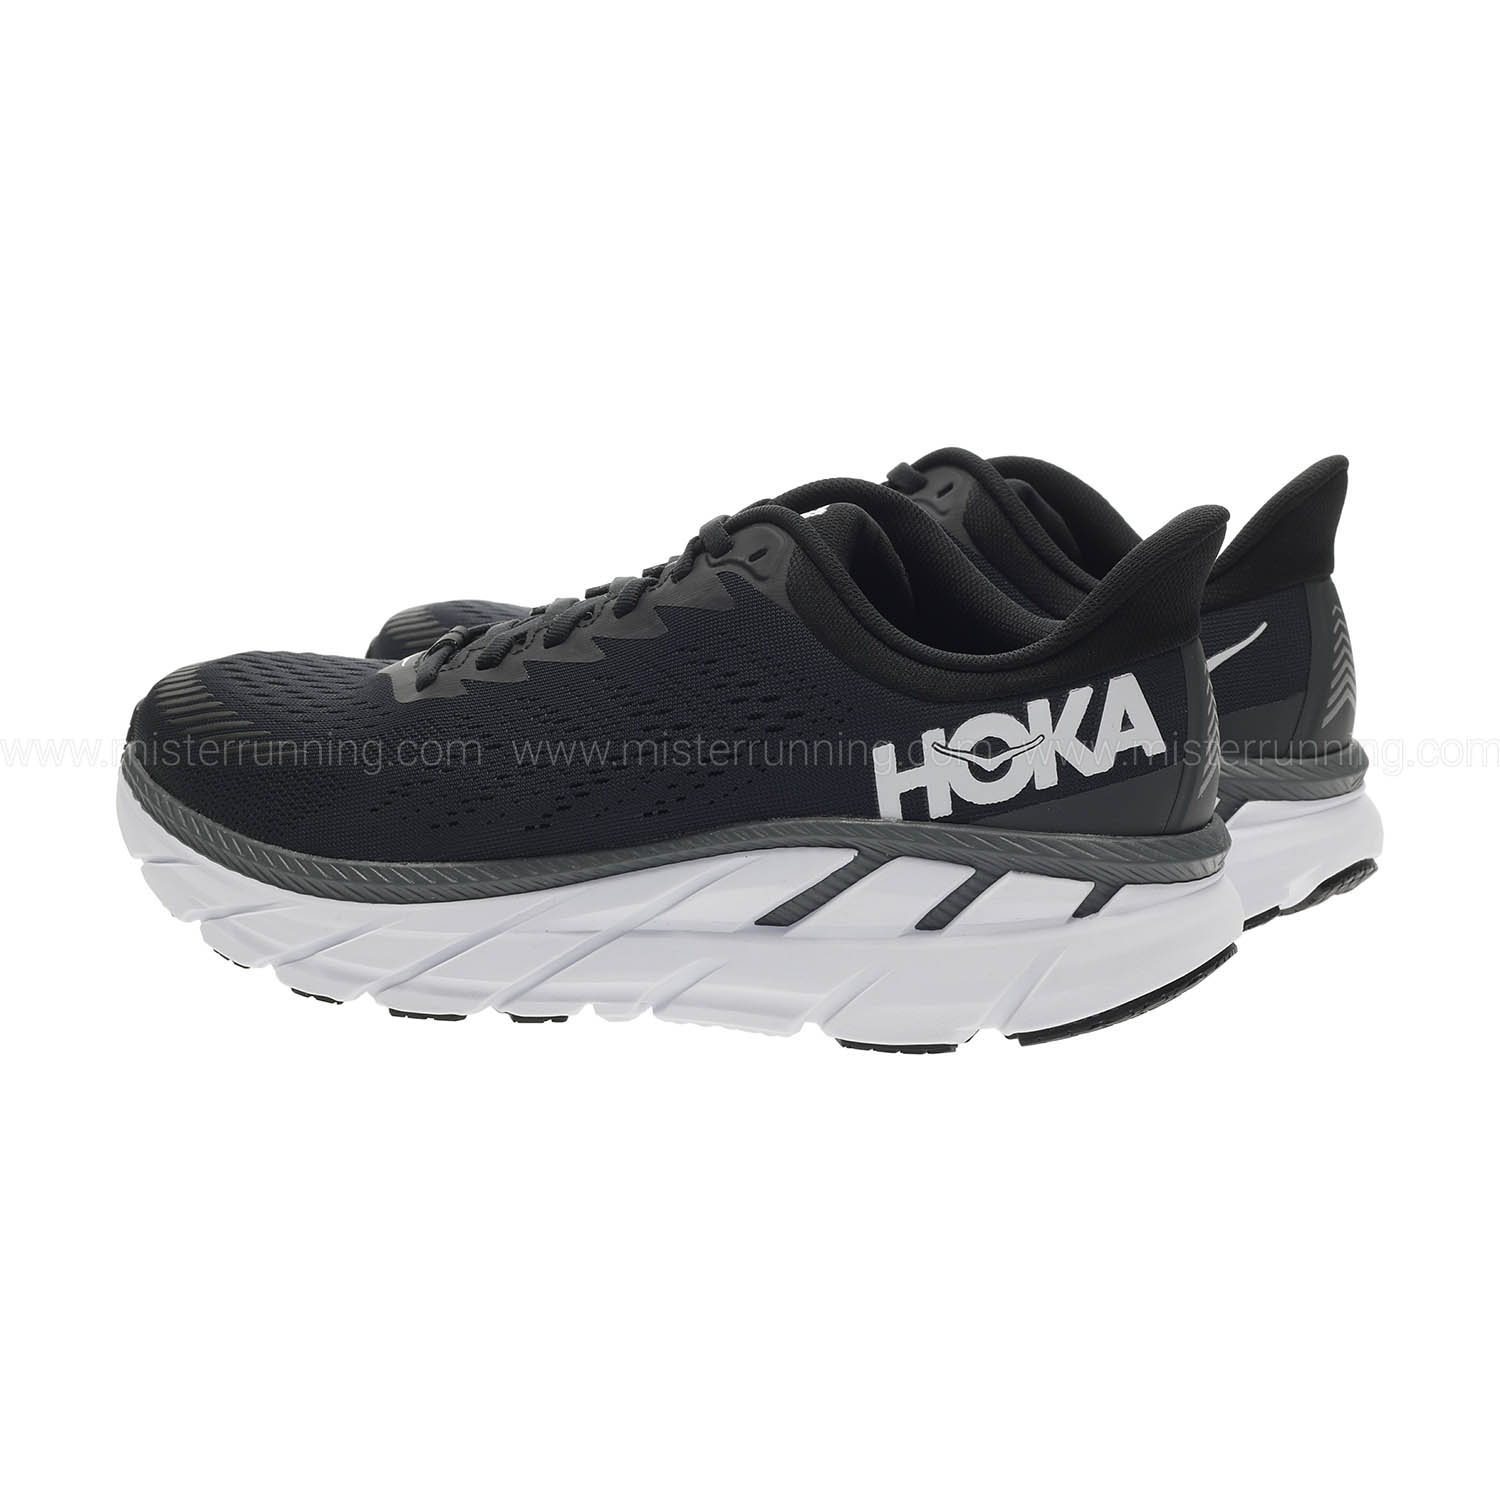 Hoka One One Clifton 7 Wide - Black/White